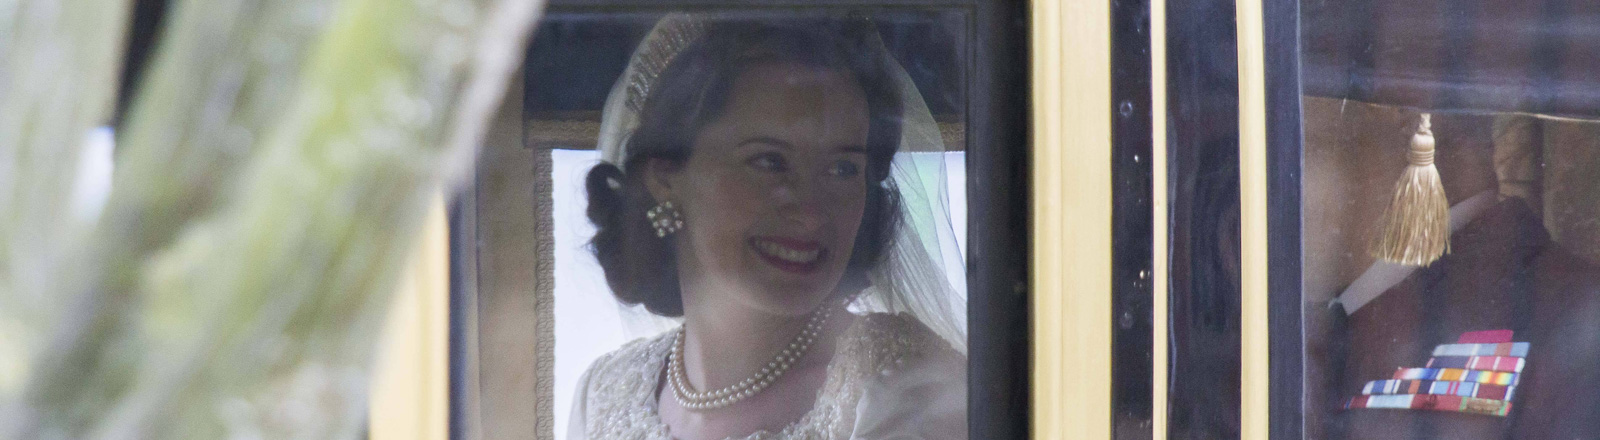 "Claire Foy als Königin Elisabeth II. in der Netzflix-Serie ""The Crown"""